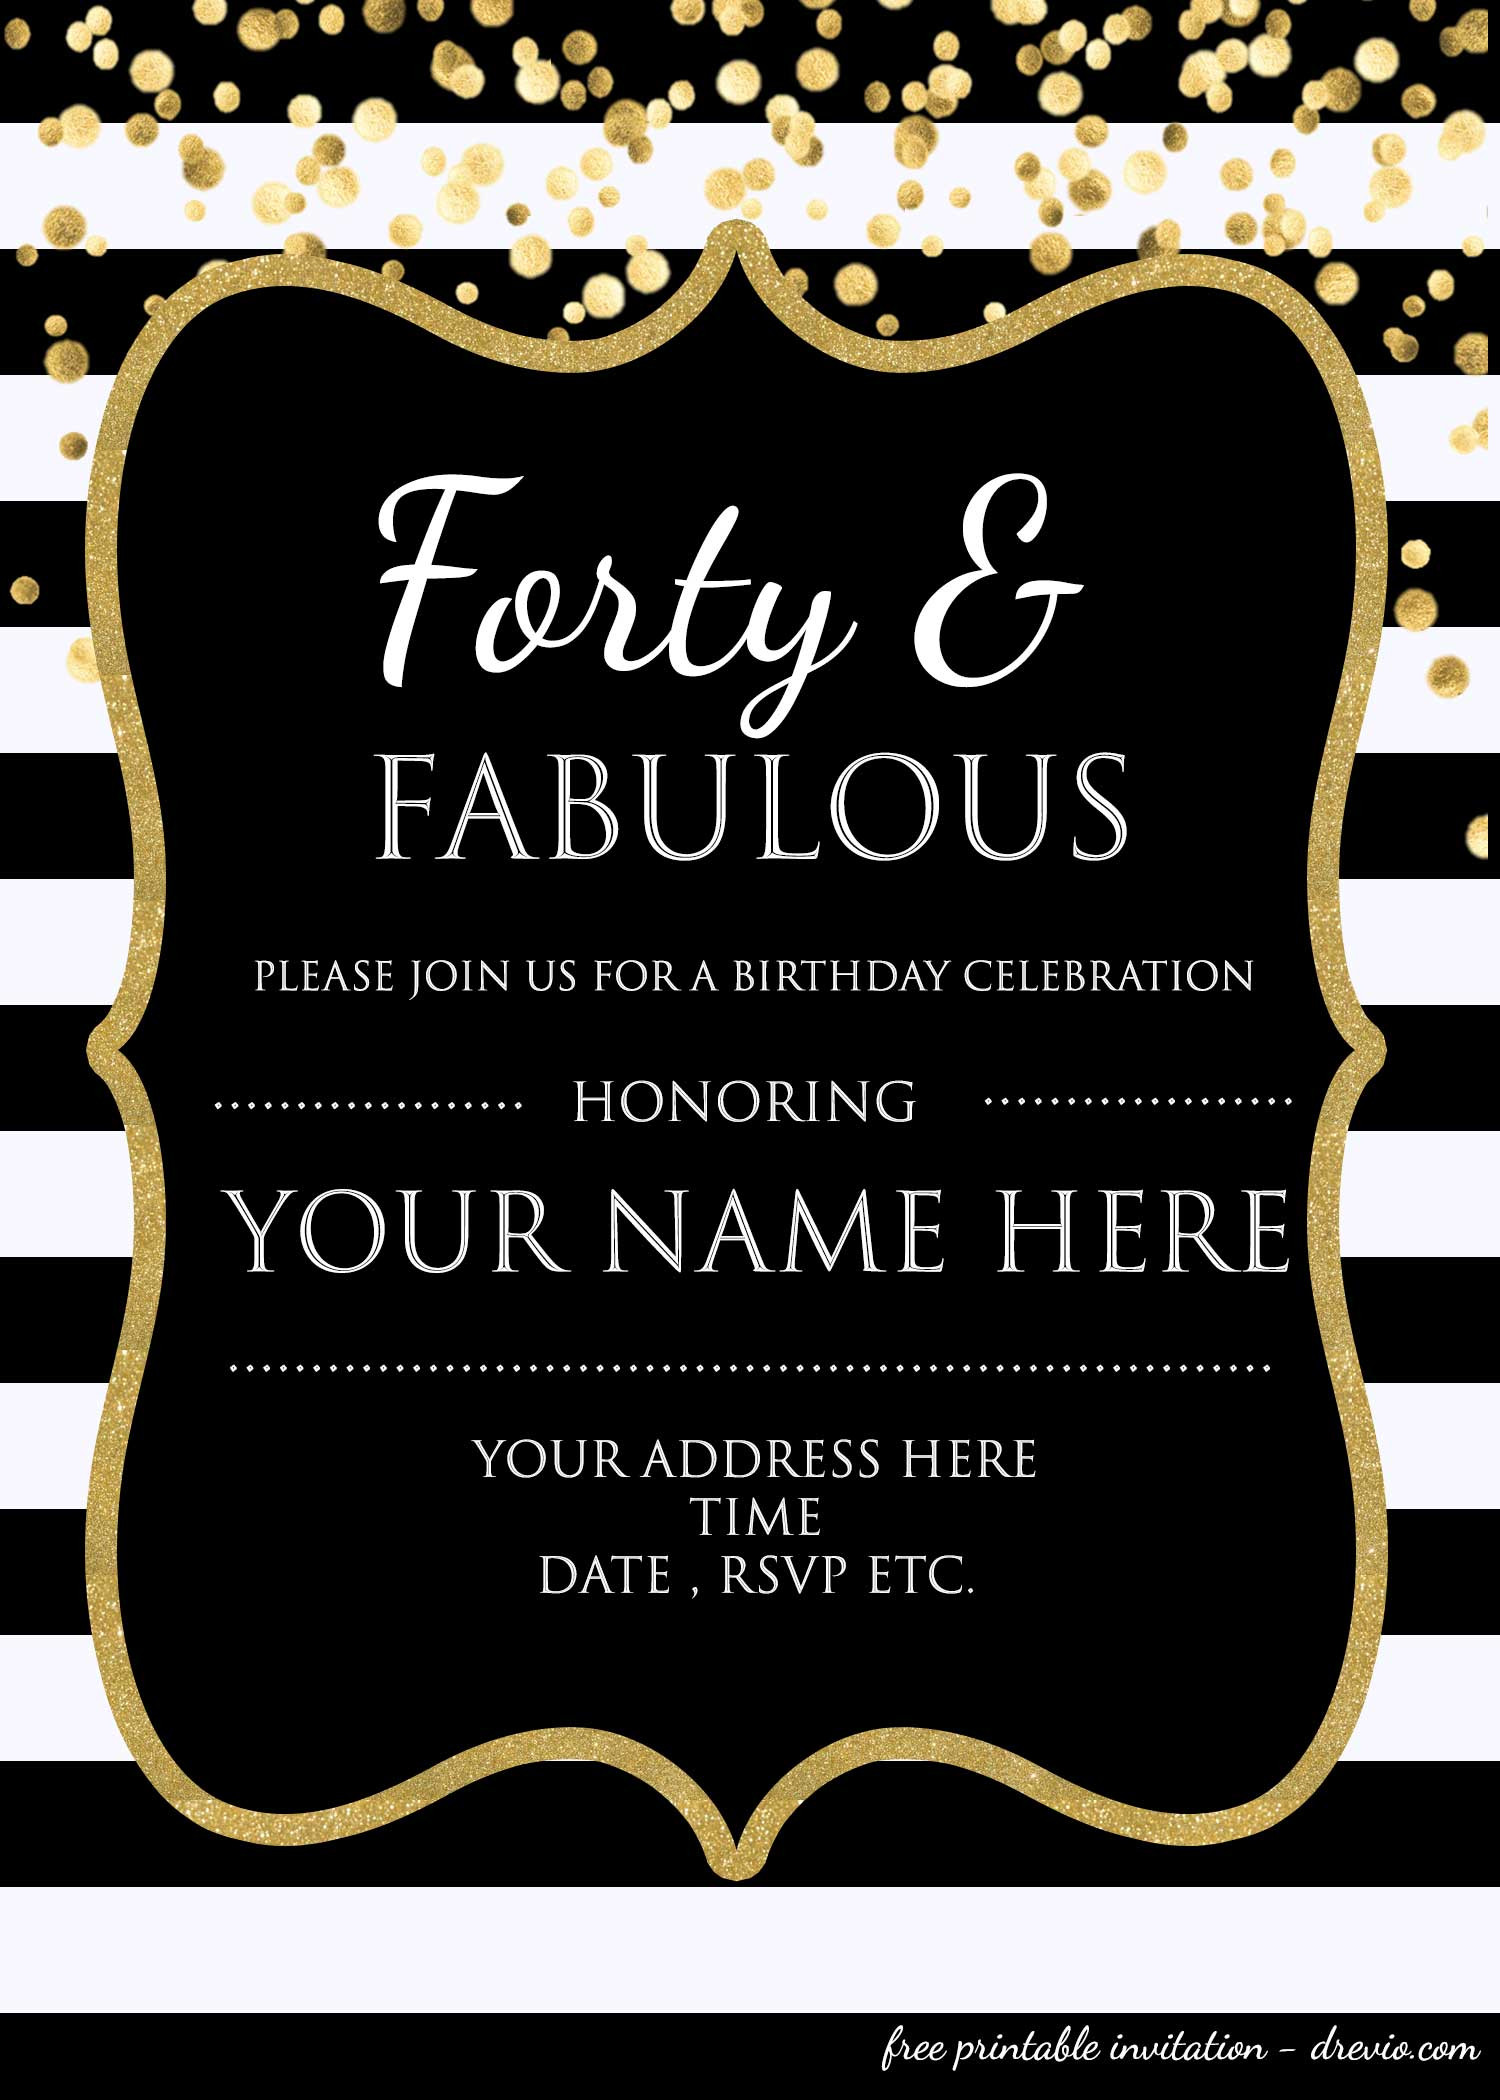 Free Templates For Birthday Invitations  40th Birthday Invitation Template – FREE – FREE Printable